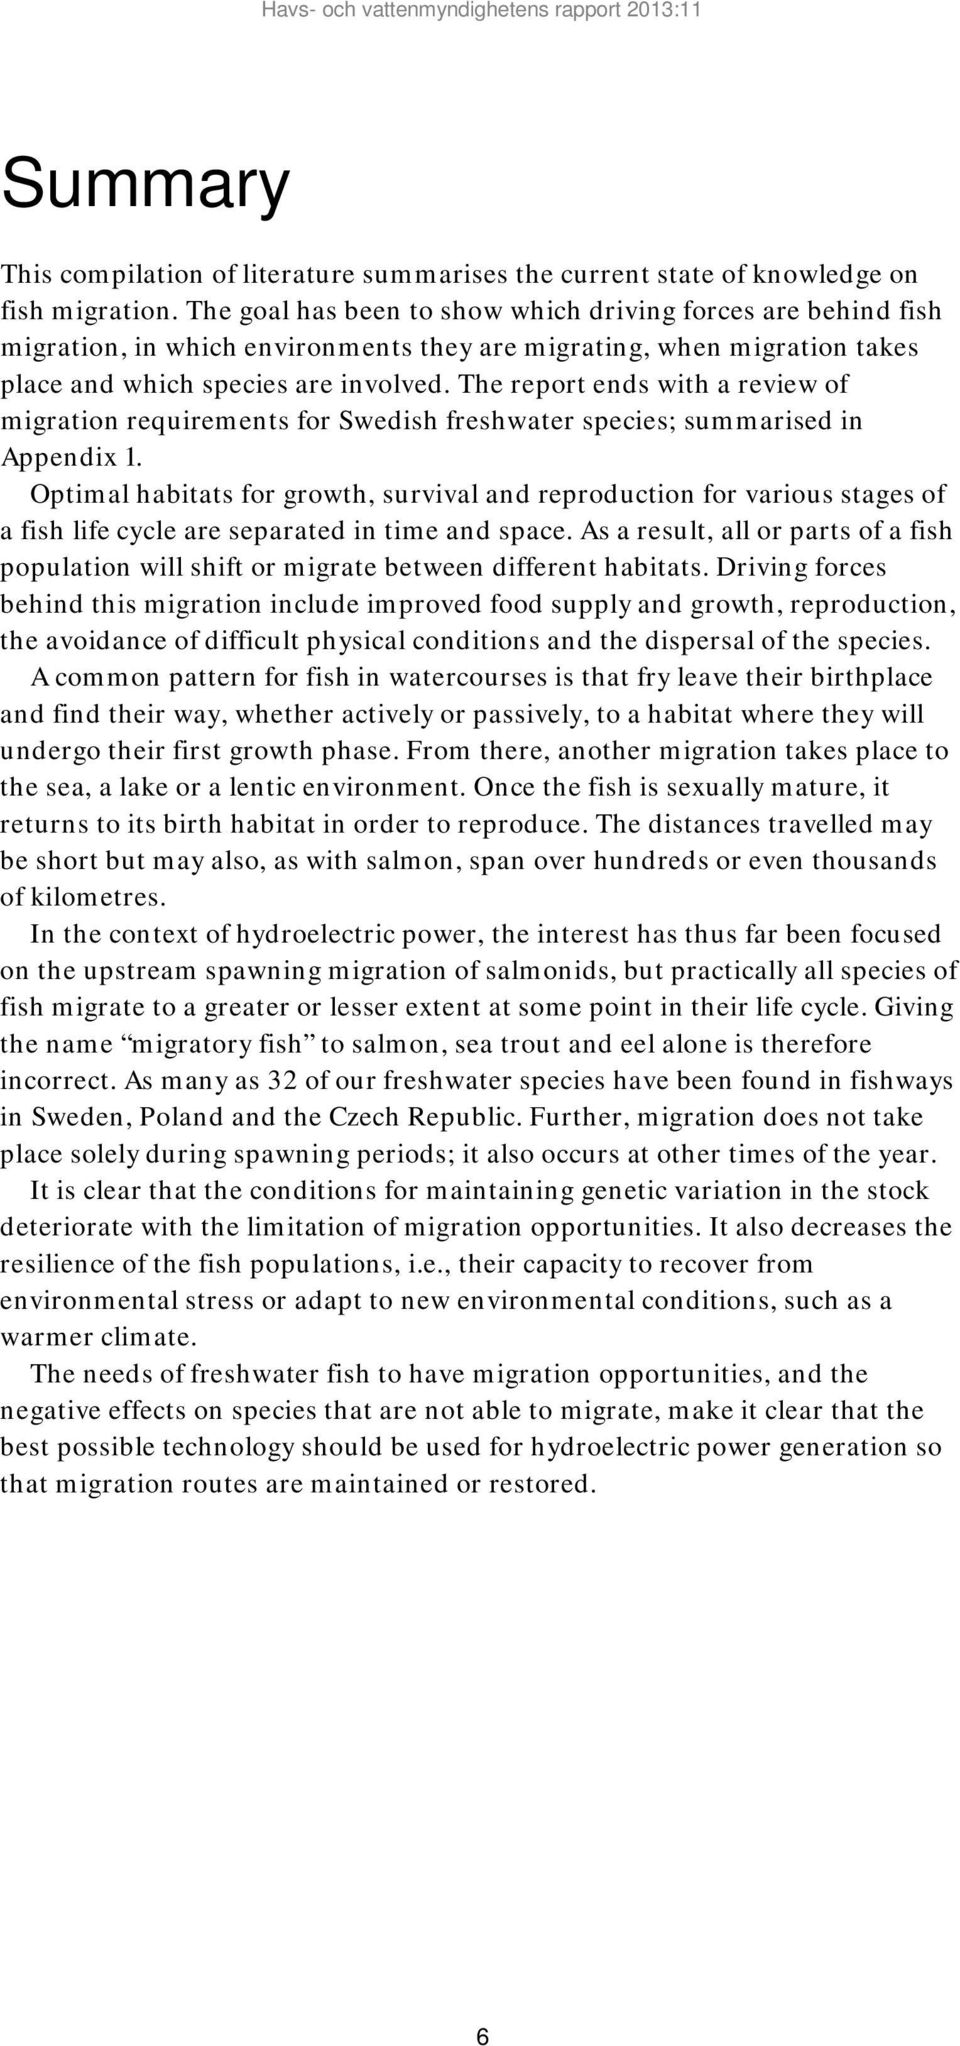 The report ends with a review of migration requirements for Swedish freshwater species; summarised in Appendix 1.